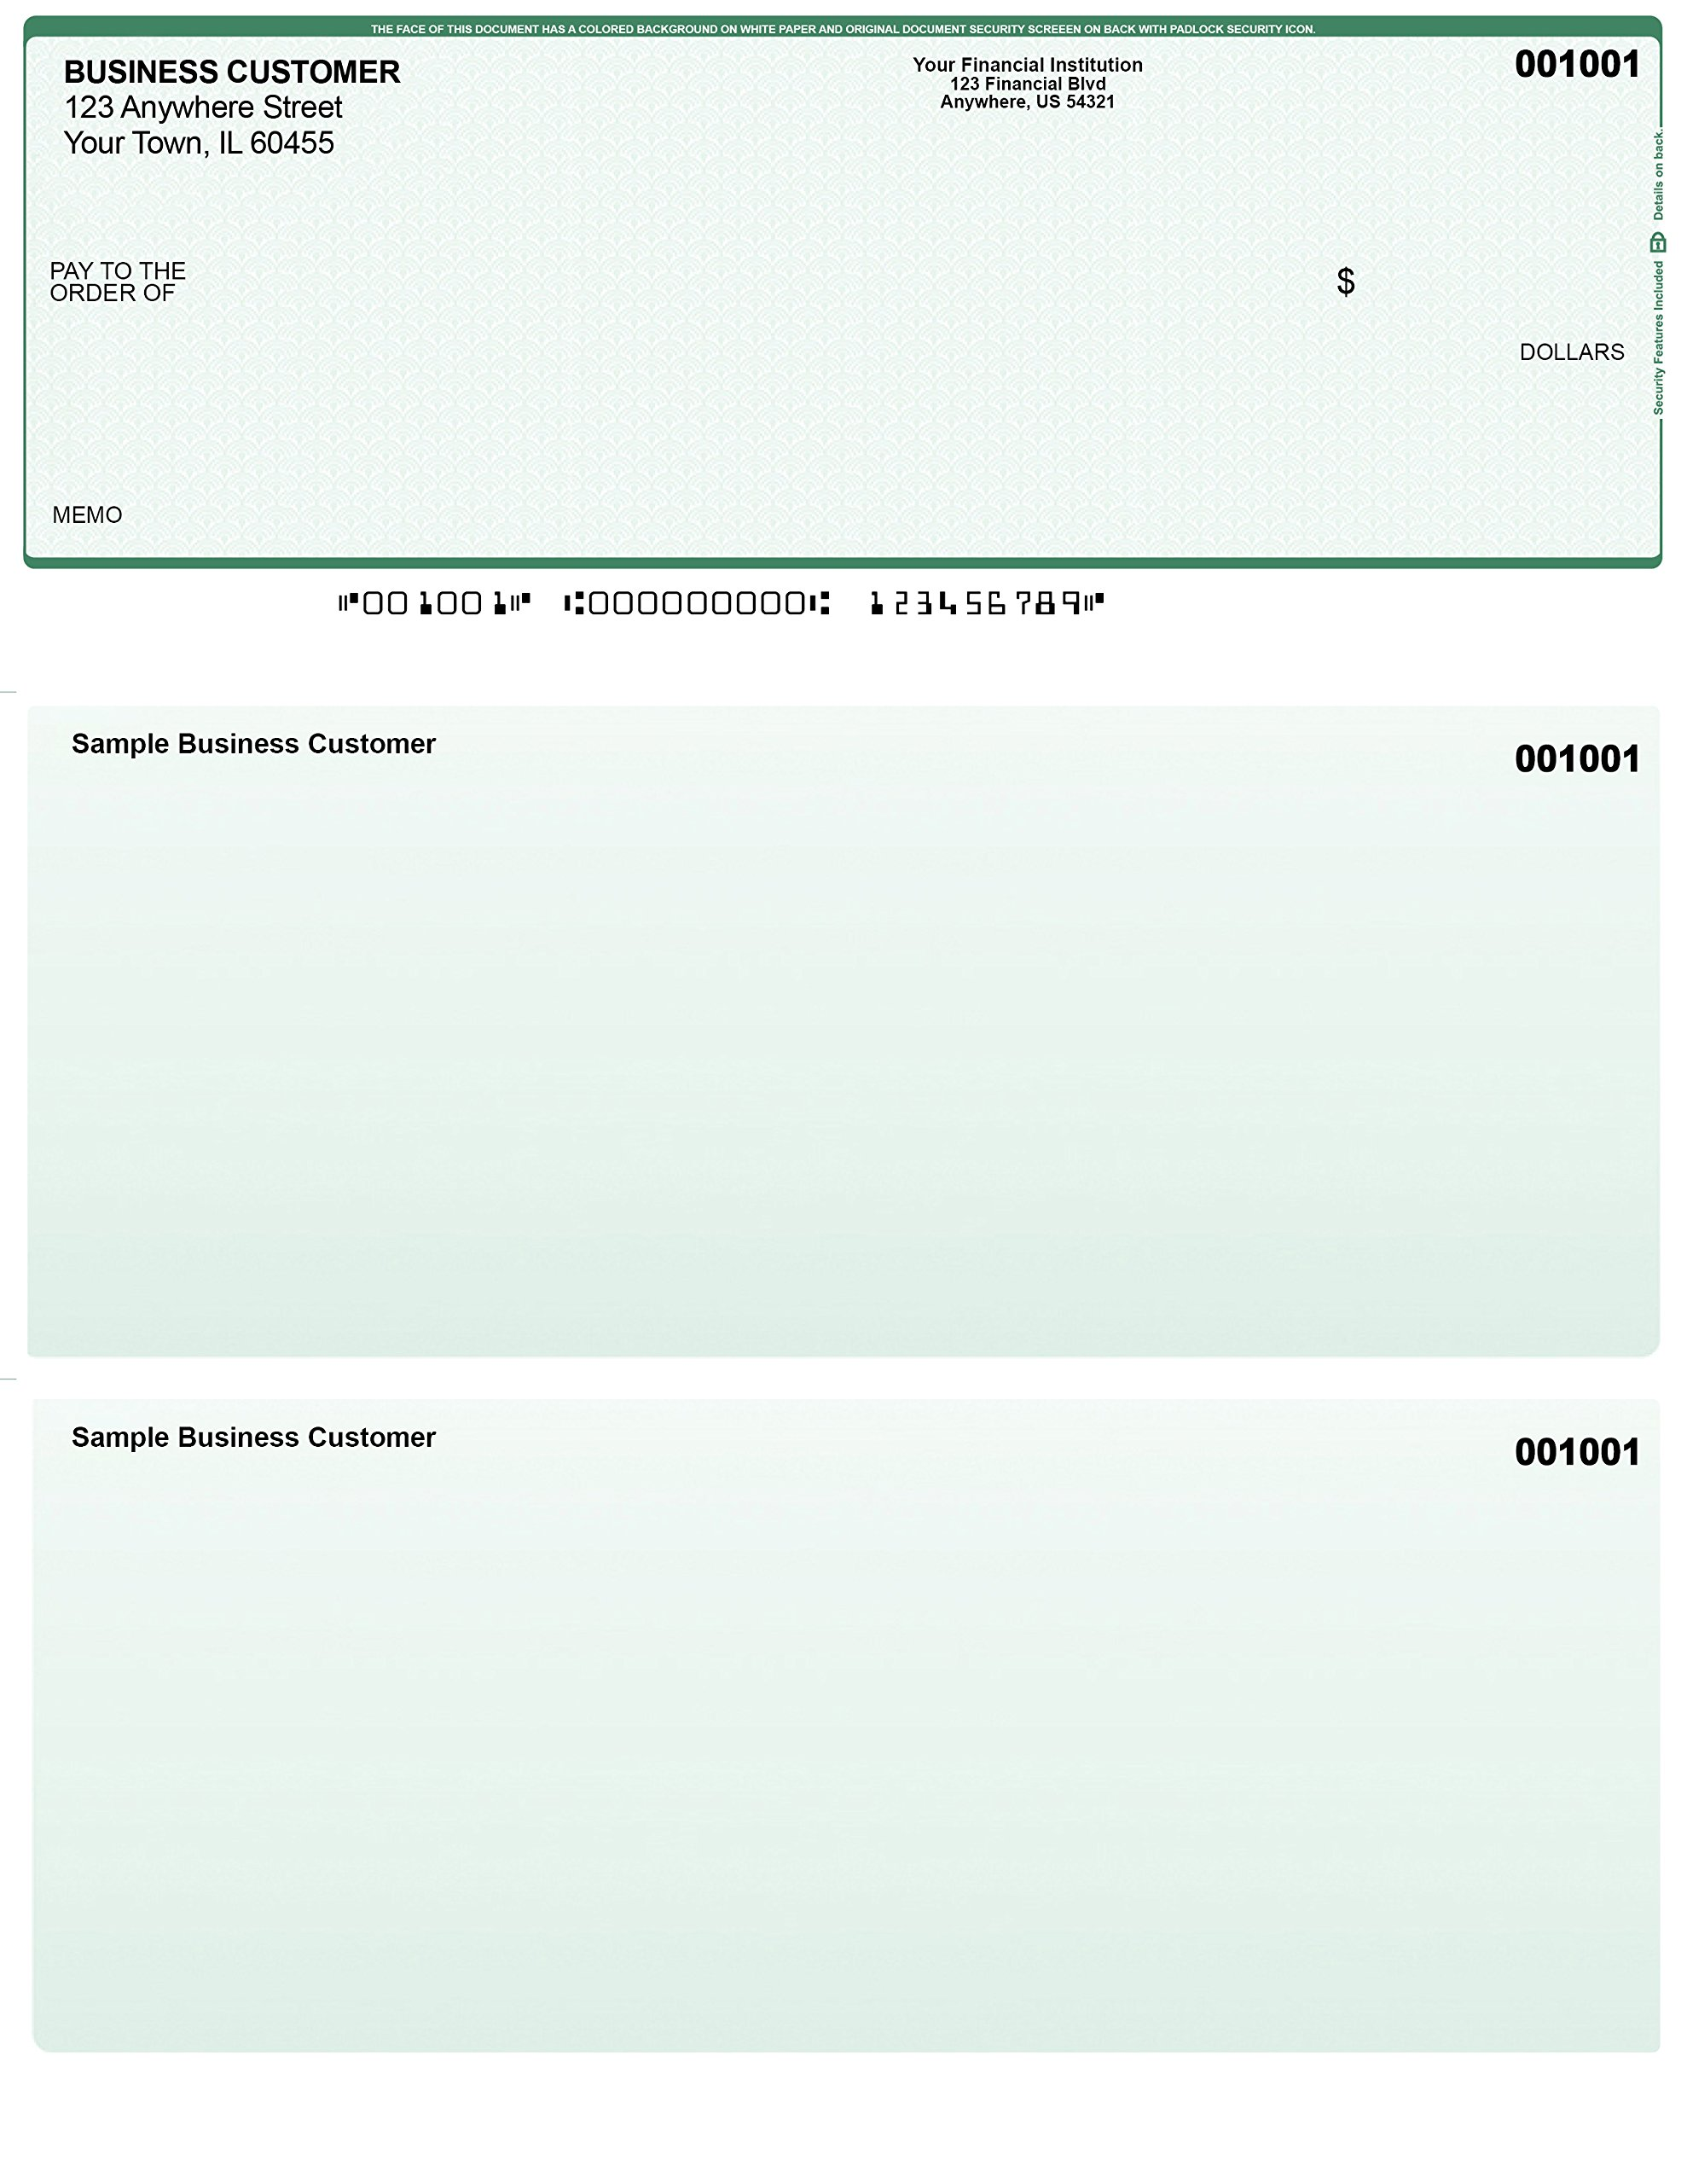 Green Safety Computer Checks - 500 Printed Laser Computer Voucher Checks - Compatible for Quickbooks by Carousel Checks Inc.